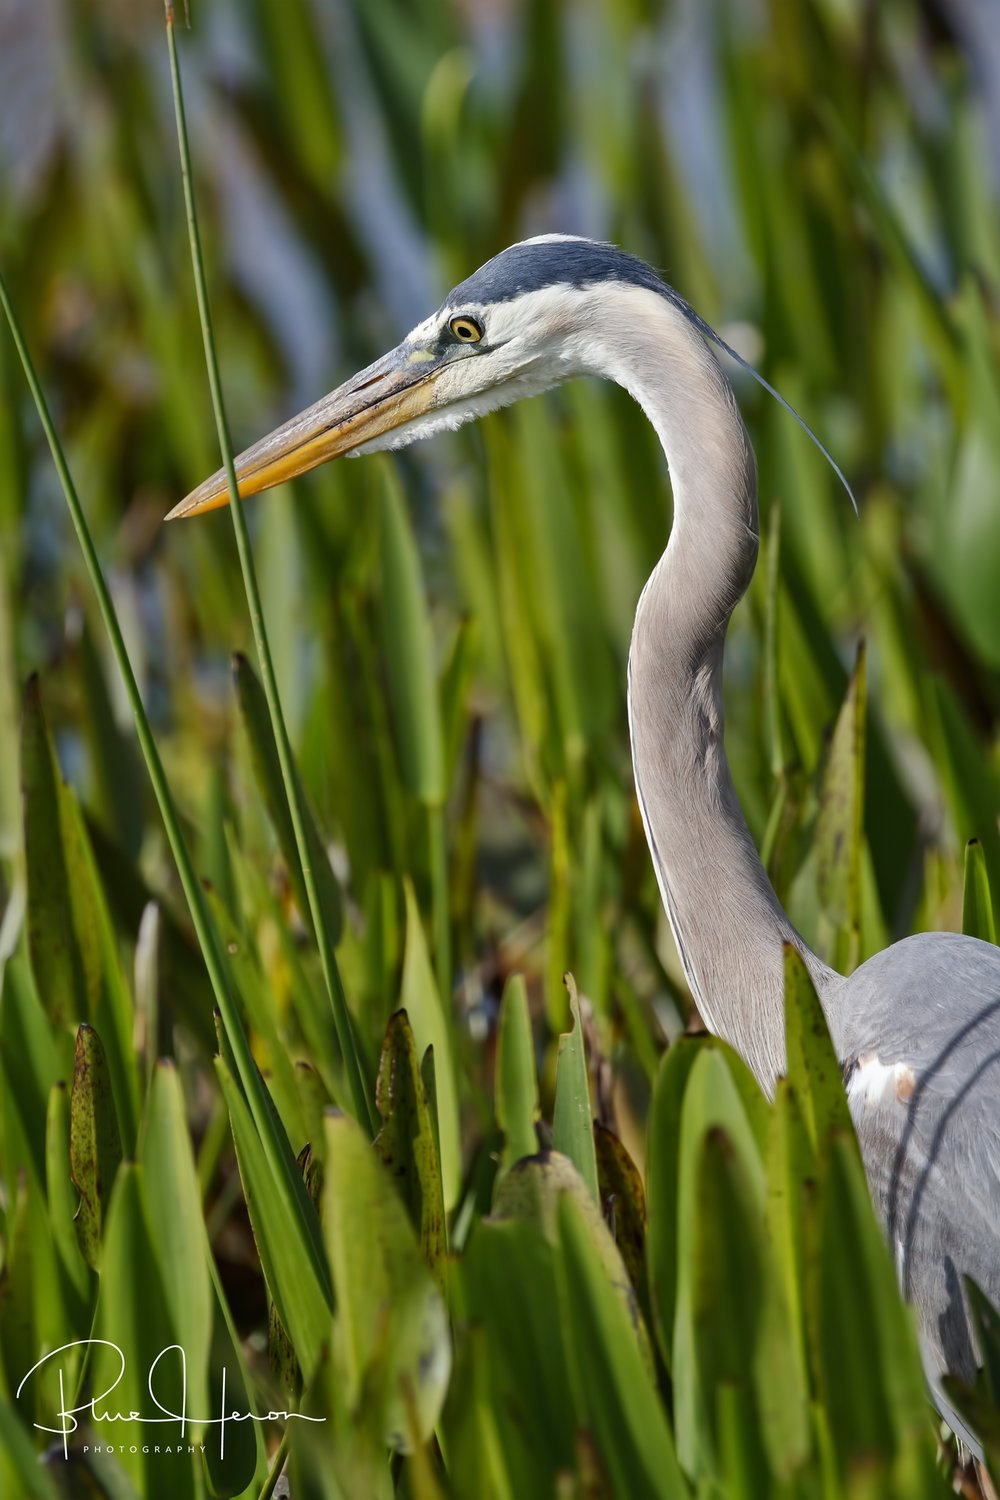 The adult Great Blue Heron searches the march grass for food for the growing young.